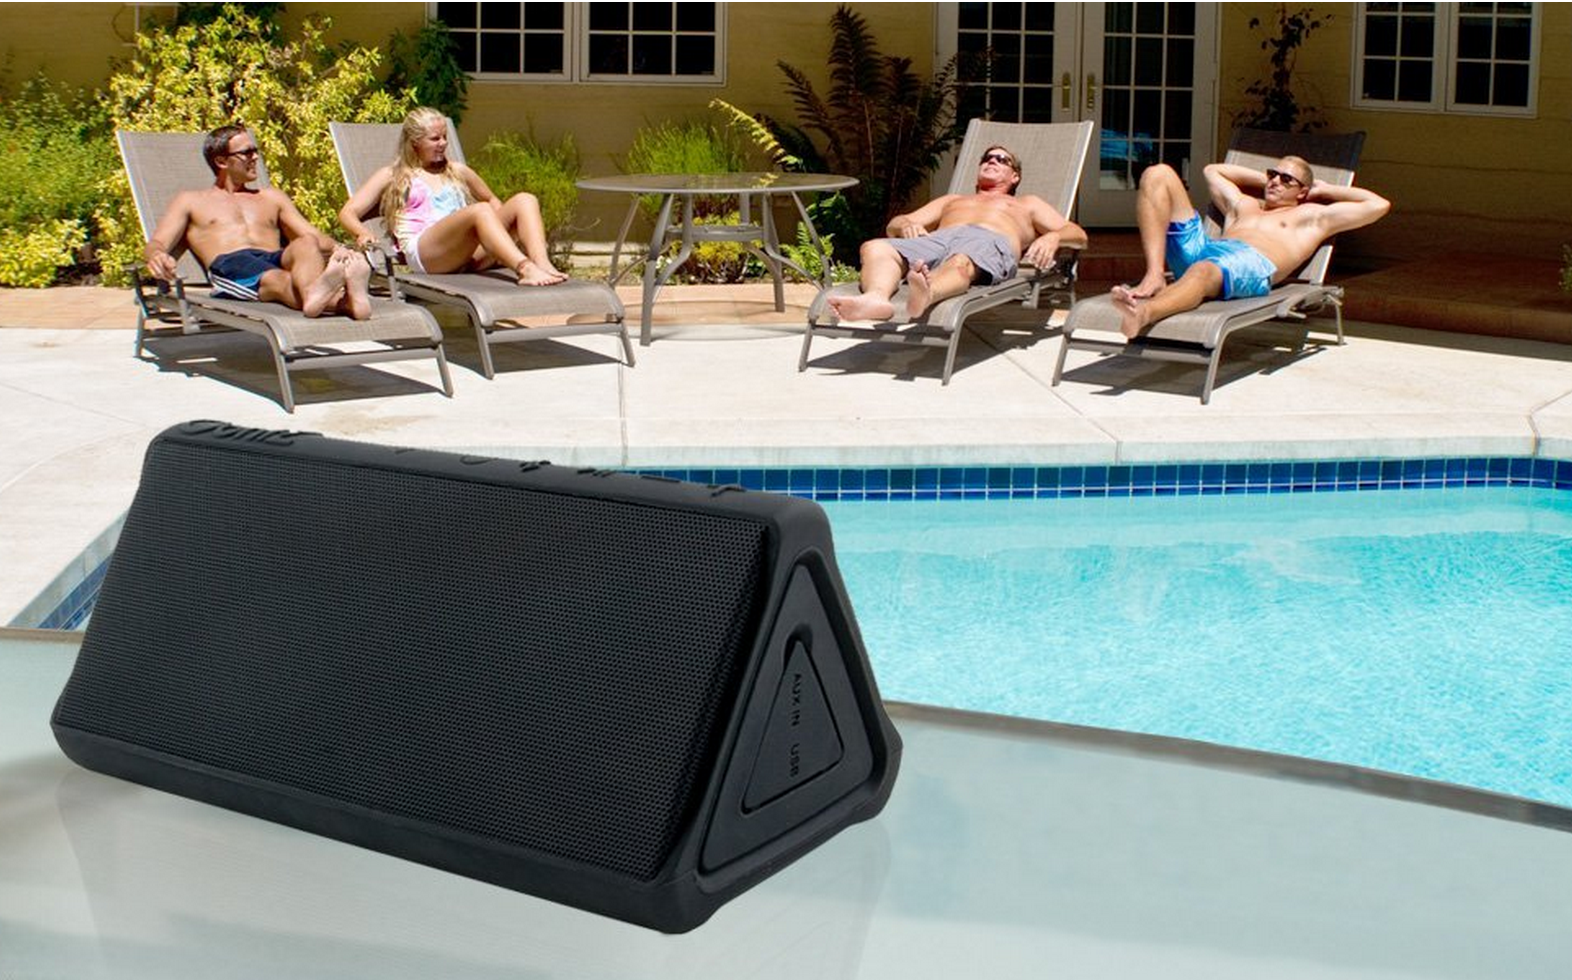 Highly Rated Wireless Bluetooth Speaker Only $19.99 (Reg. $99.99!) +